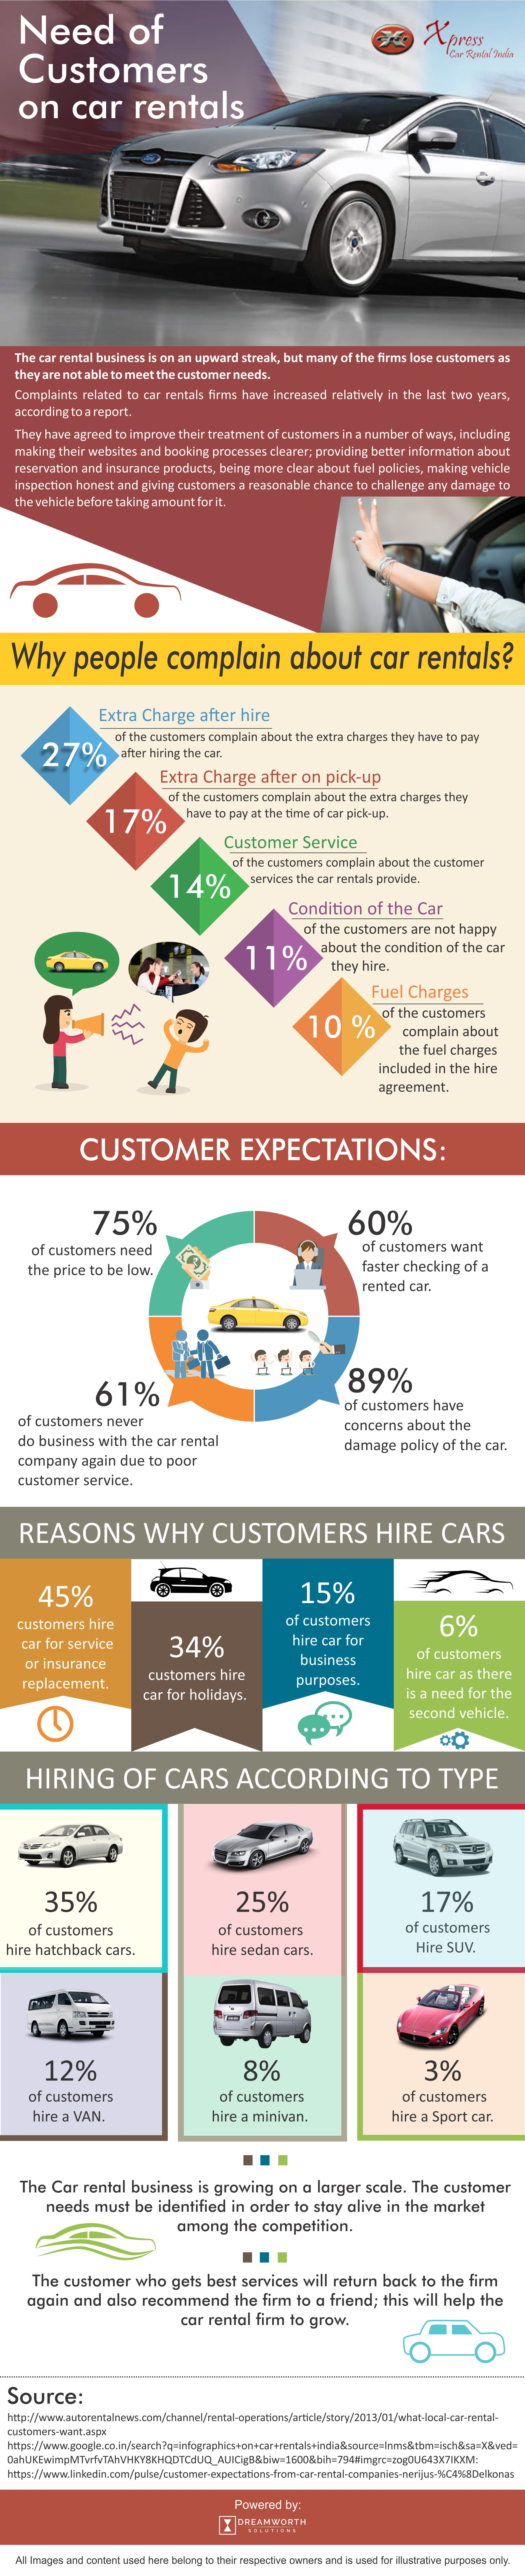 This infographic shows how to provide the car rental services to the customer